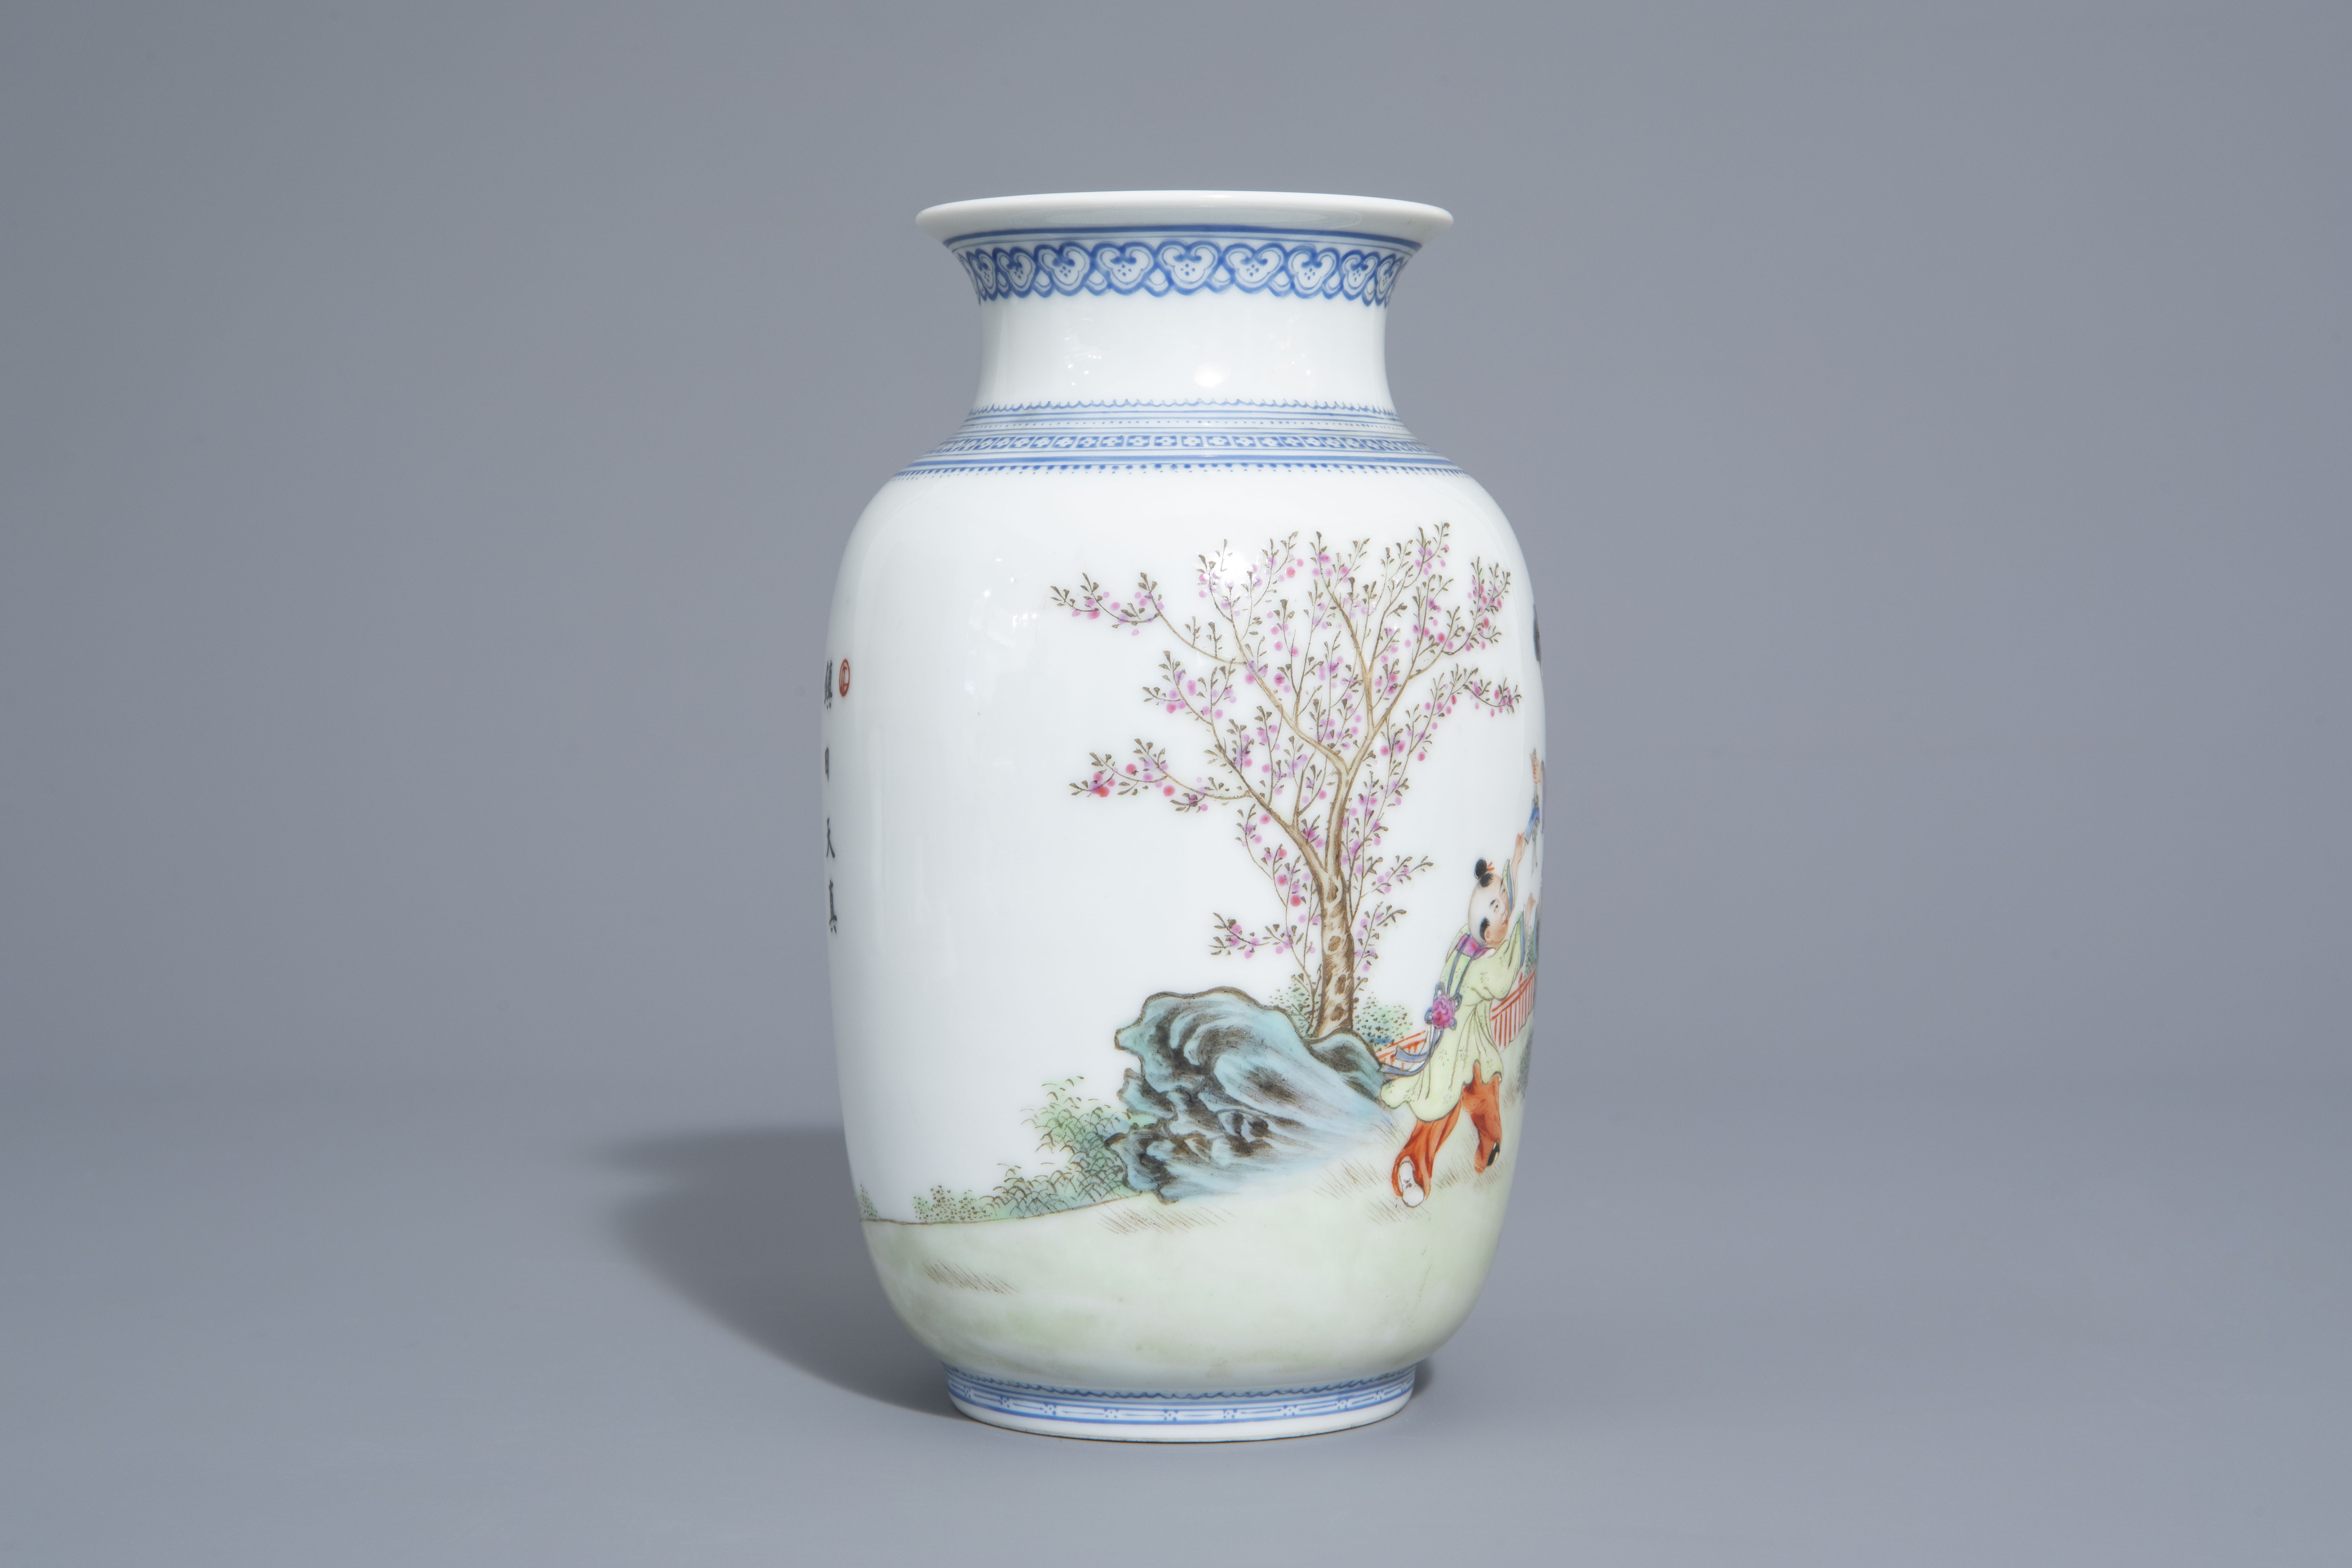 A Chinese famille rose eggshell vase and six 'Wu Shuang Pu' covers, 19th/20th C. - Image 5 of 18